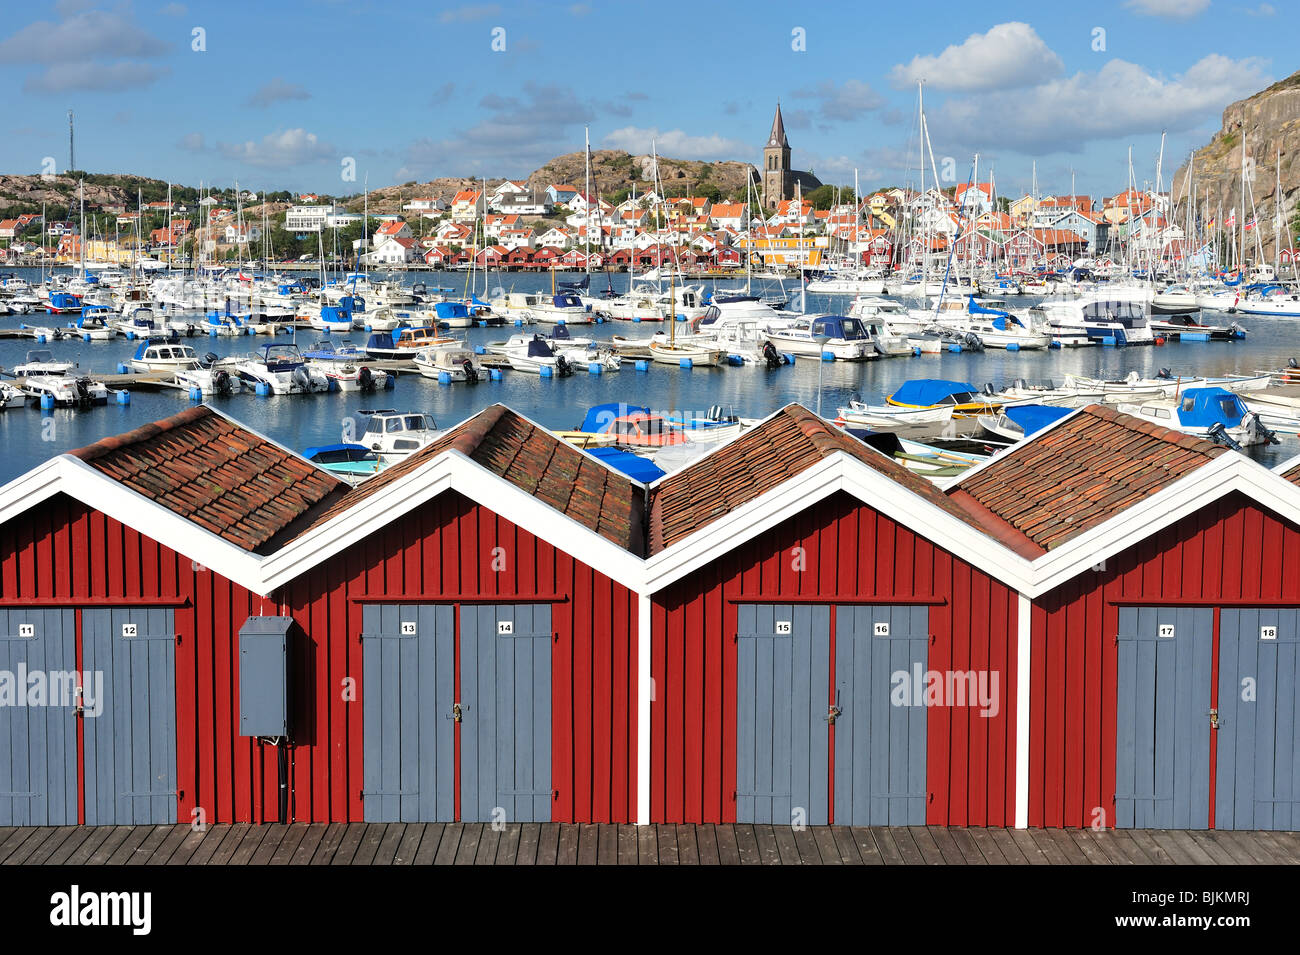 A row of red storage buildings at a marina with boats and a waterfront village seen in the background. Horizontal - Stock Image